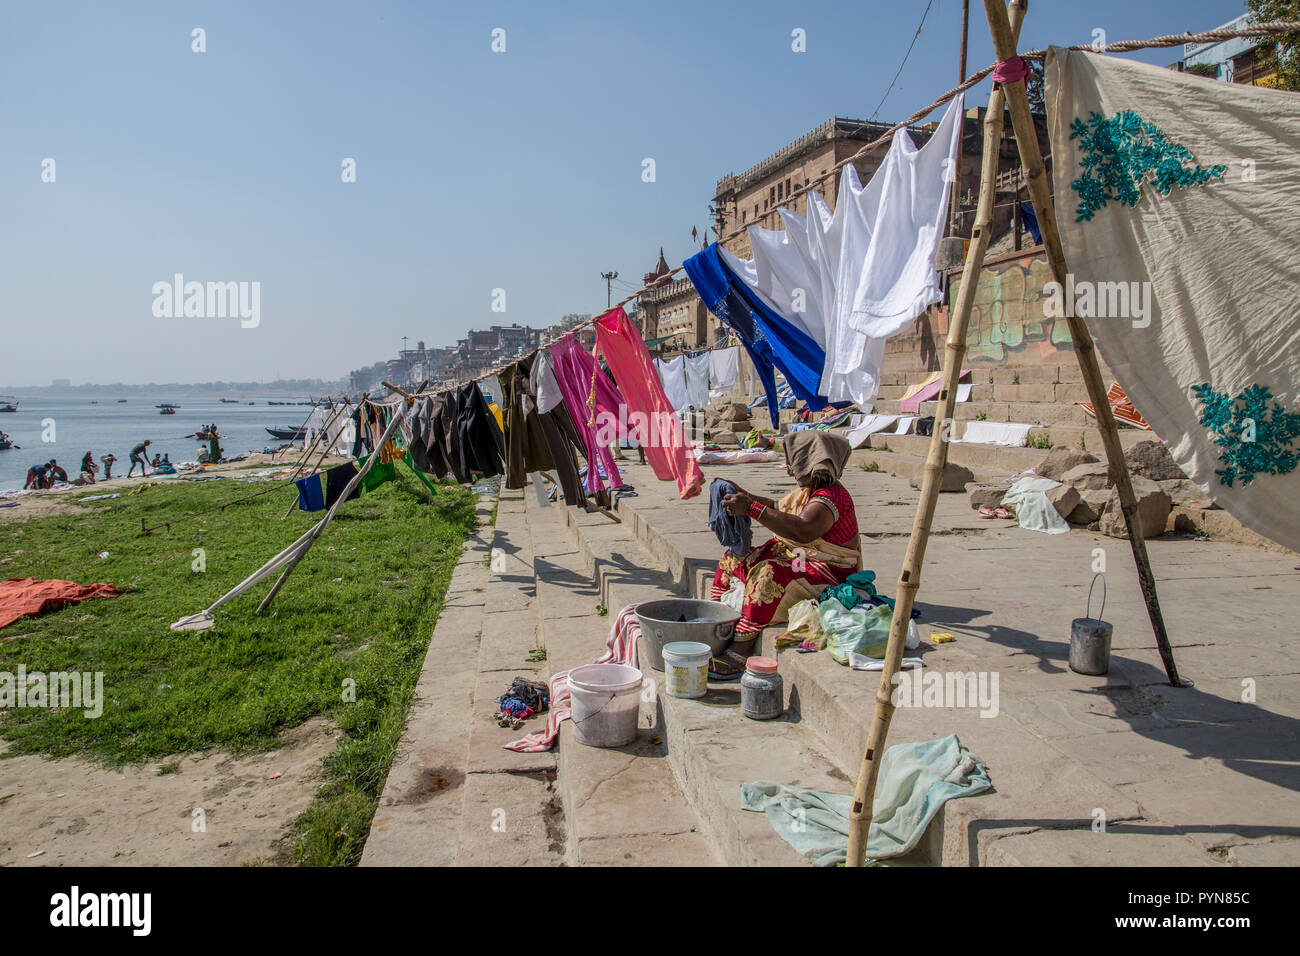 Laundry day on the Ganges river, Varanasi, Uttar Pradesh, India. Clothes and linen are washed in the river and spread to dry on the river's bank - Stock Image